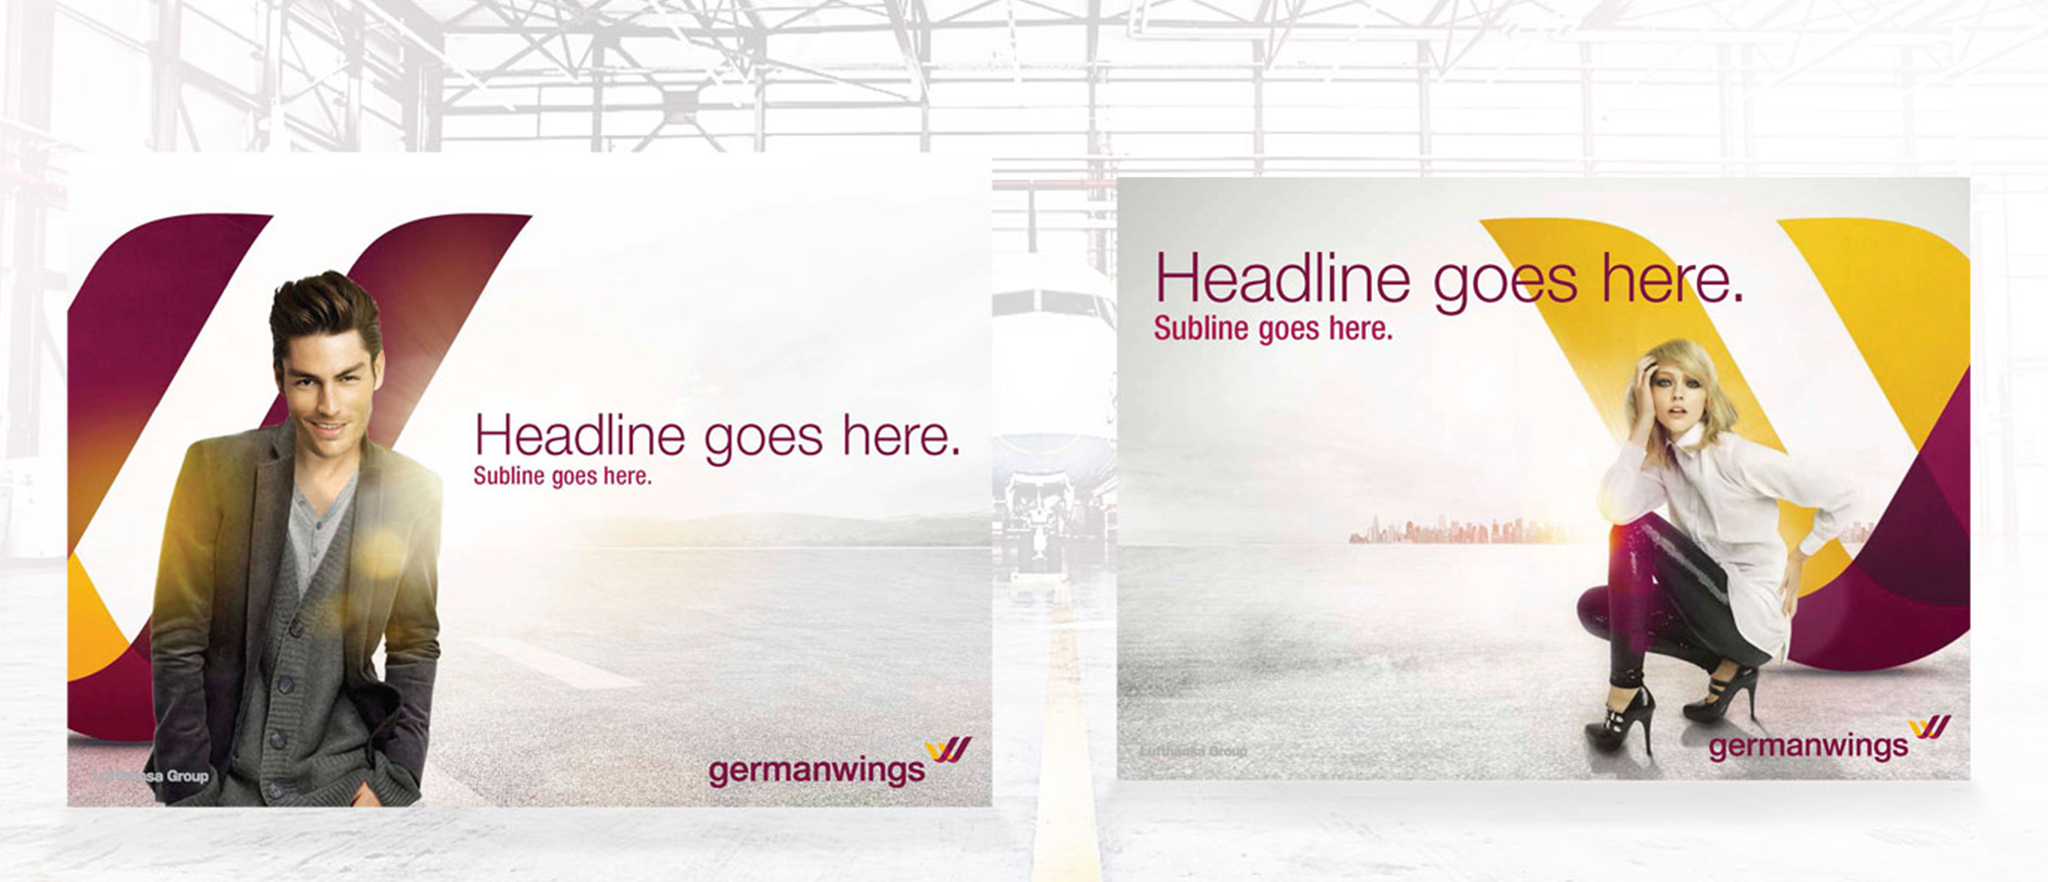 Germanwings_page_11